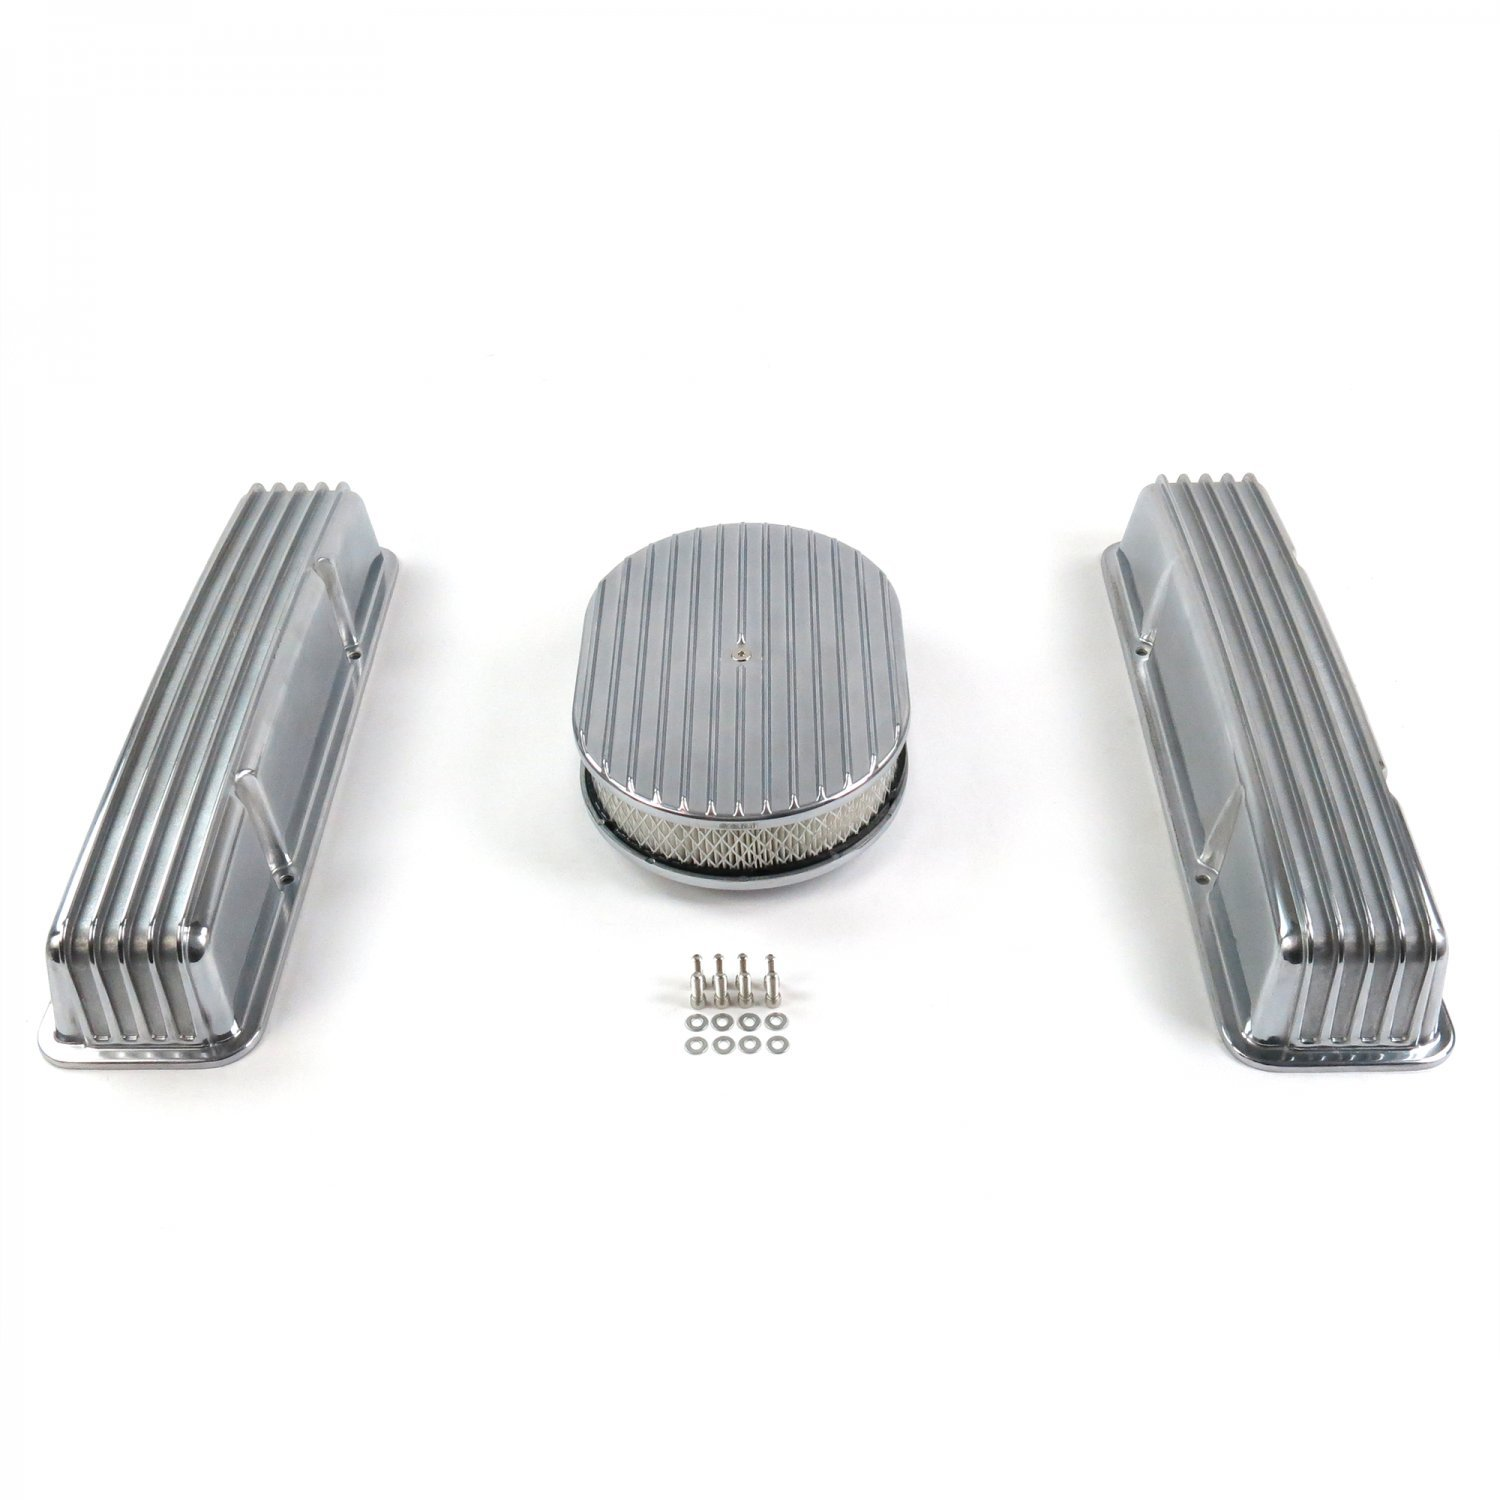 Vintage Parts 333793 SBC 12'' Full Oval/Tall Finned Engine Dress Up kit~w/o Breather Holes, 1 Pack